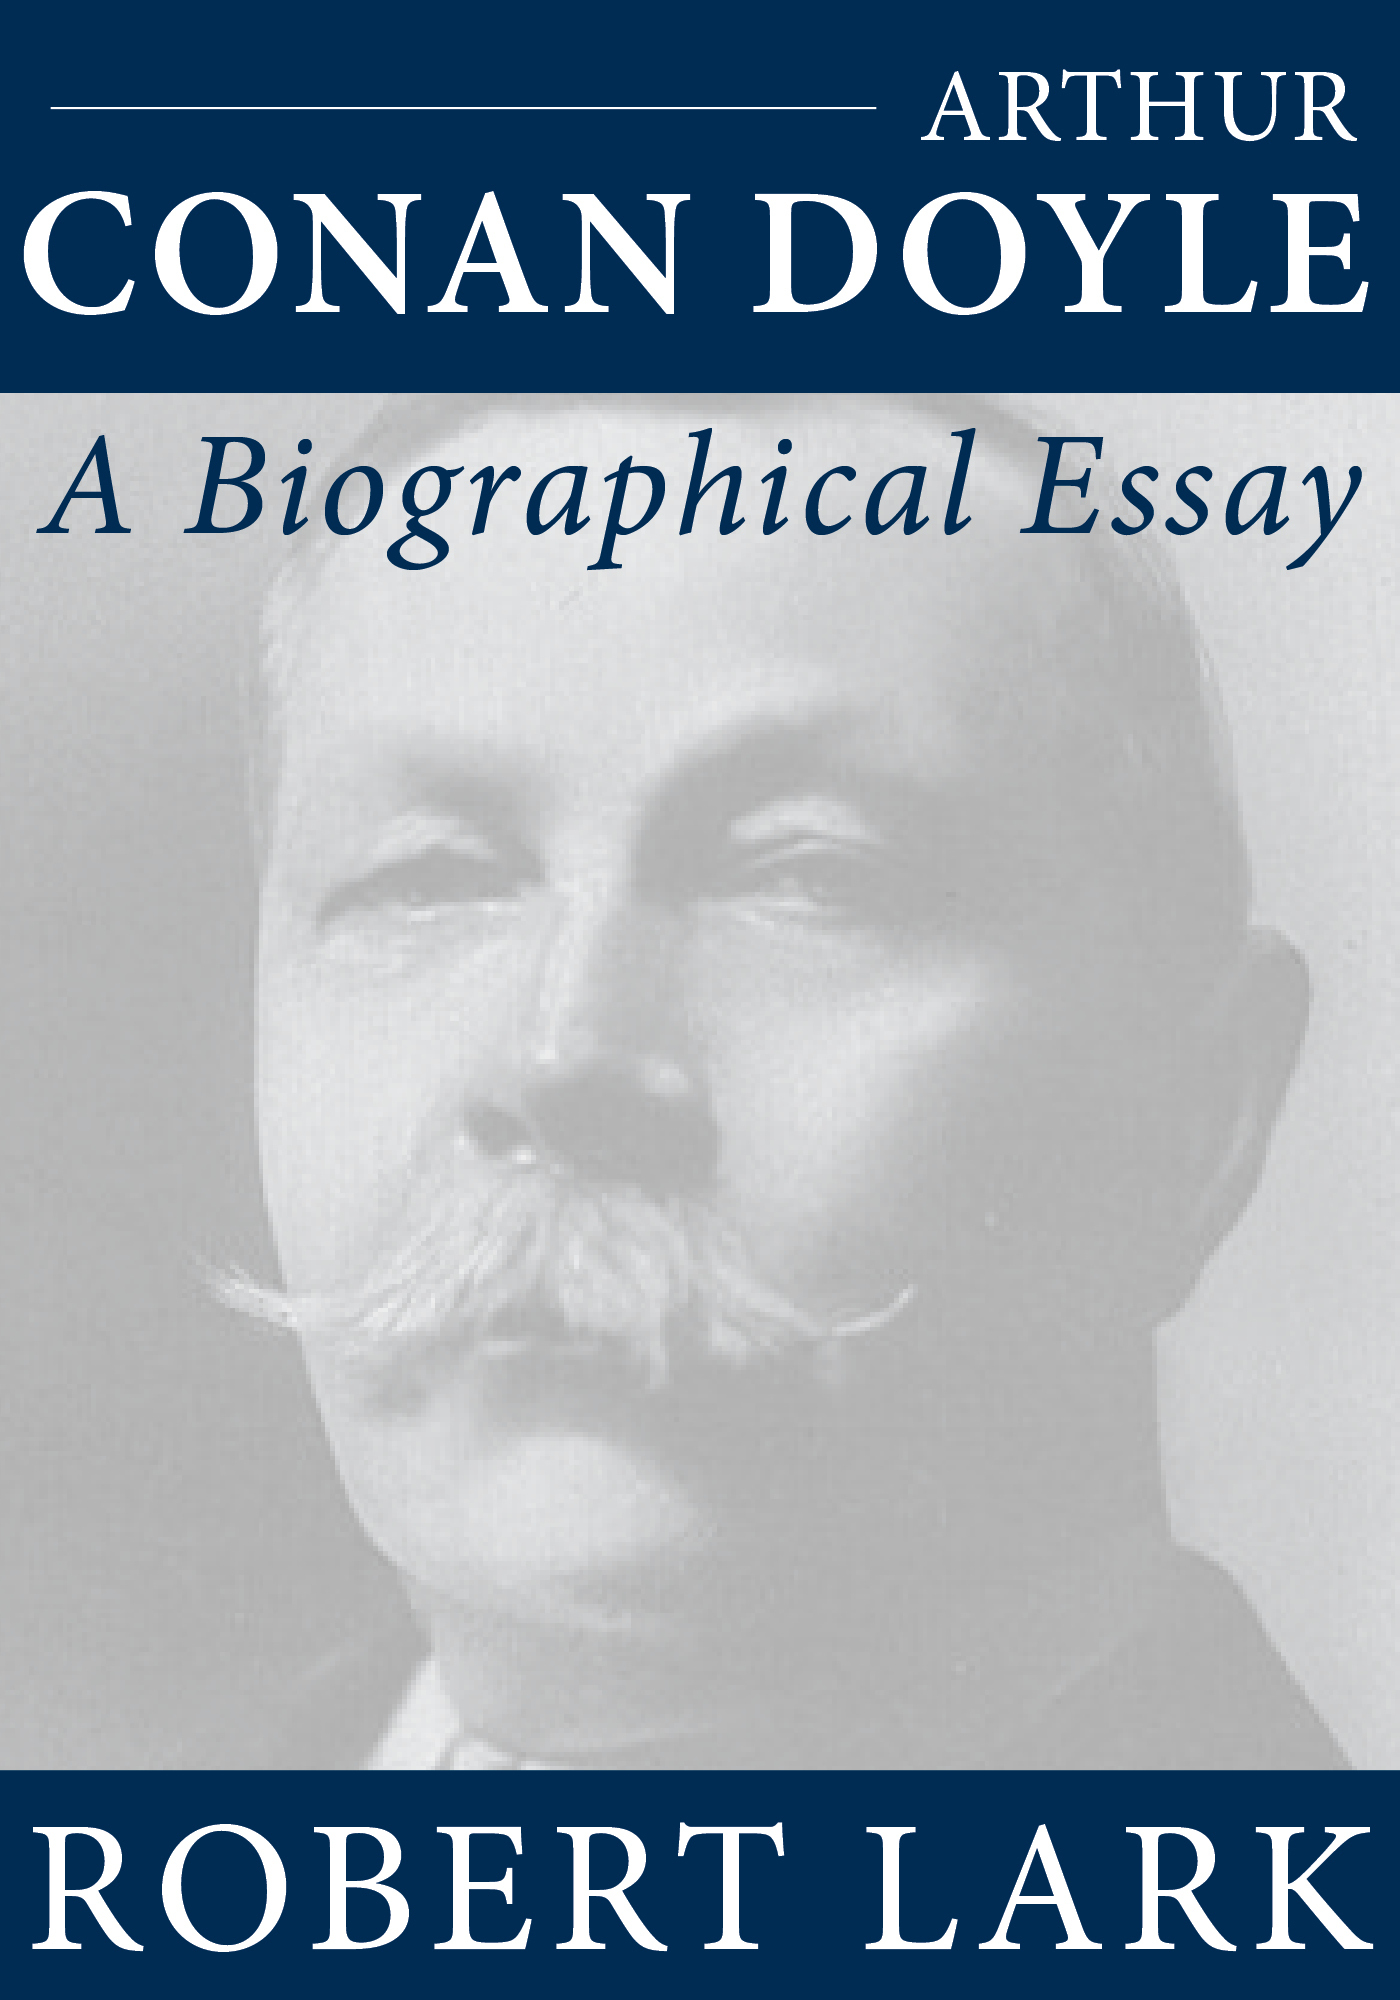 Arthur Conan Doyle: A Biographical Essay